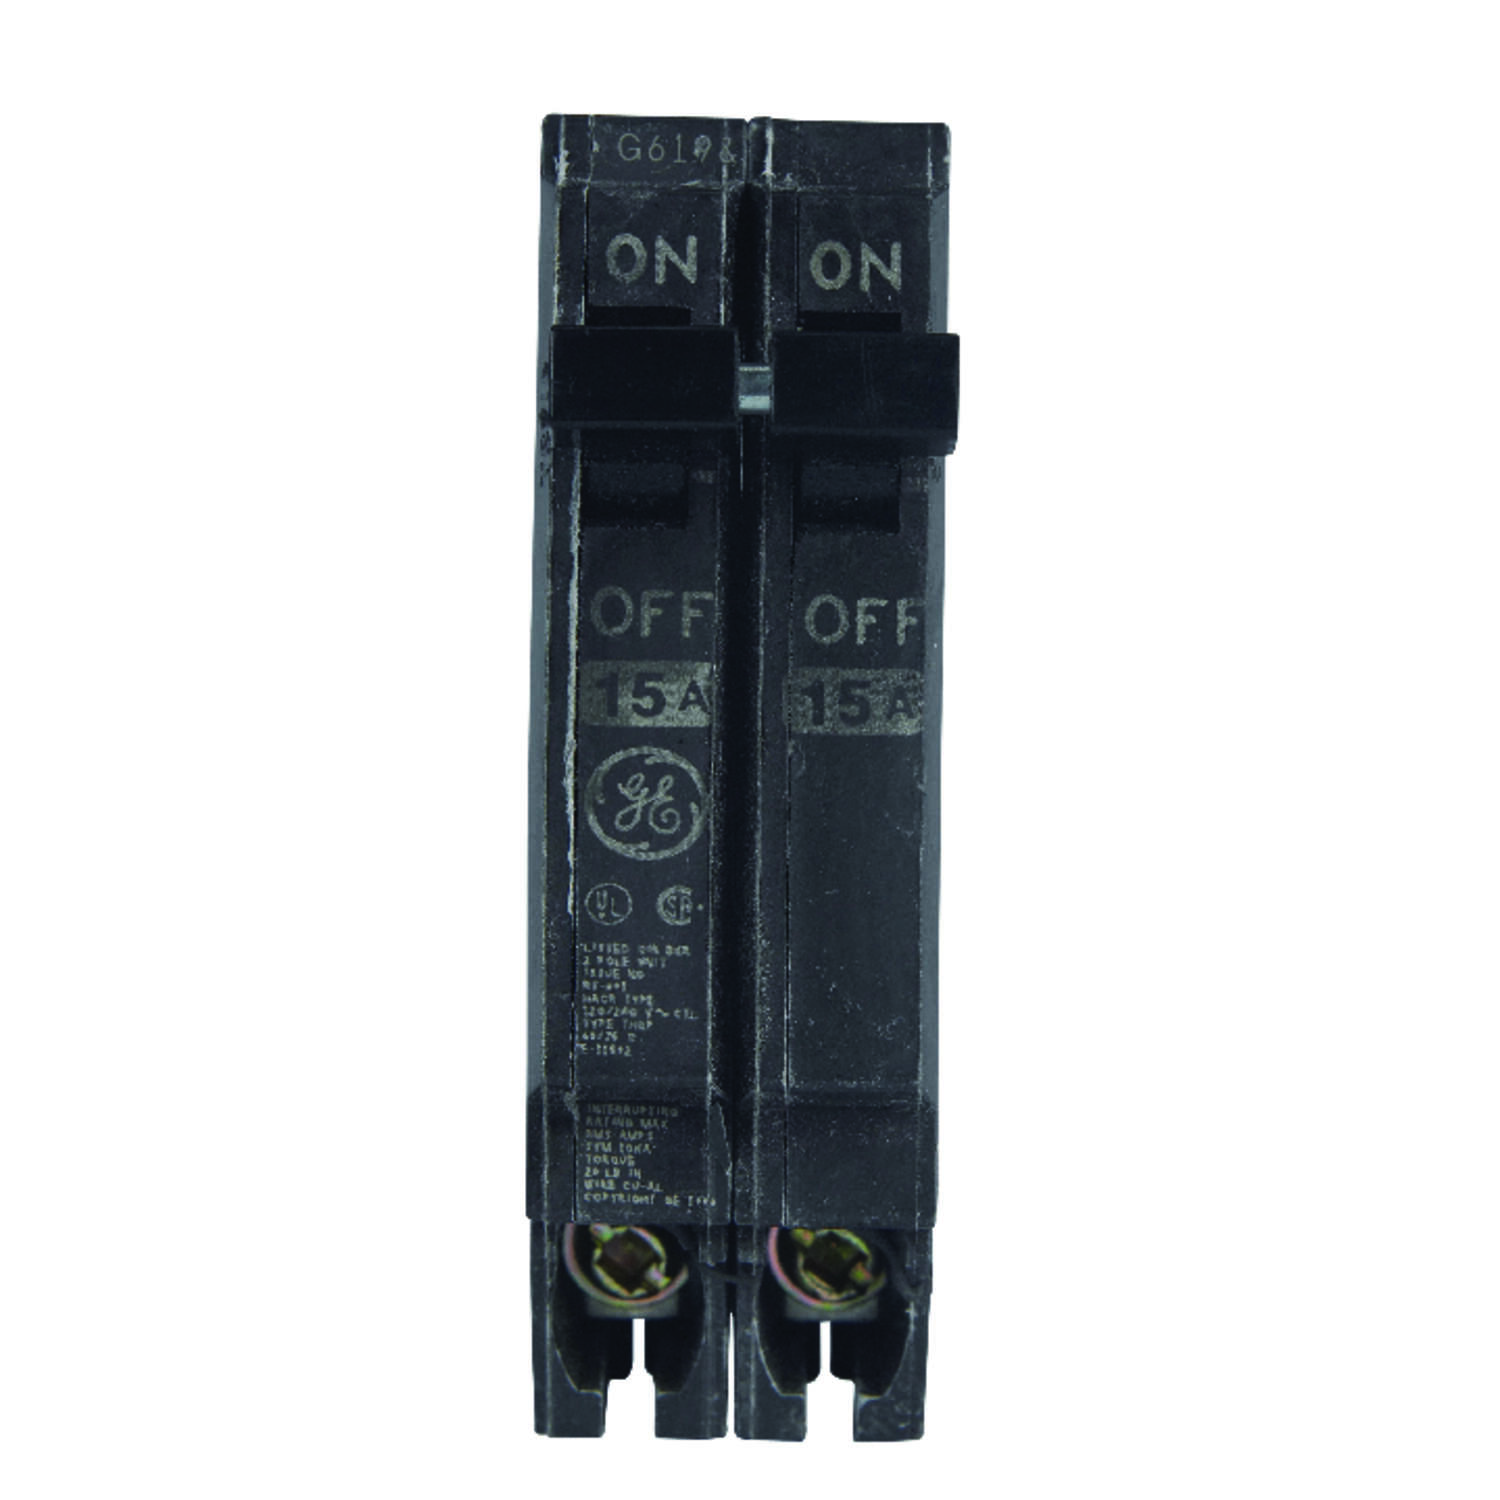 Ge Q Line 15 Amps Standard 2 Pole Circuit Breaker Ace Hardware 220 Amp Fuse Box With